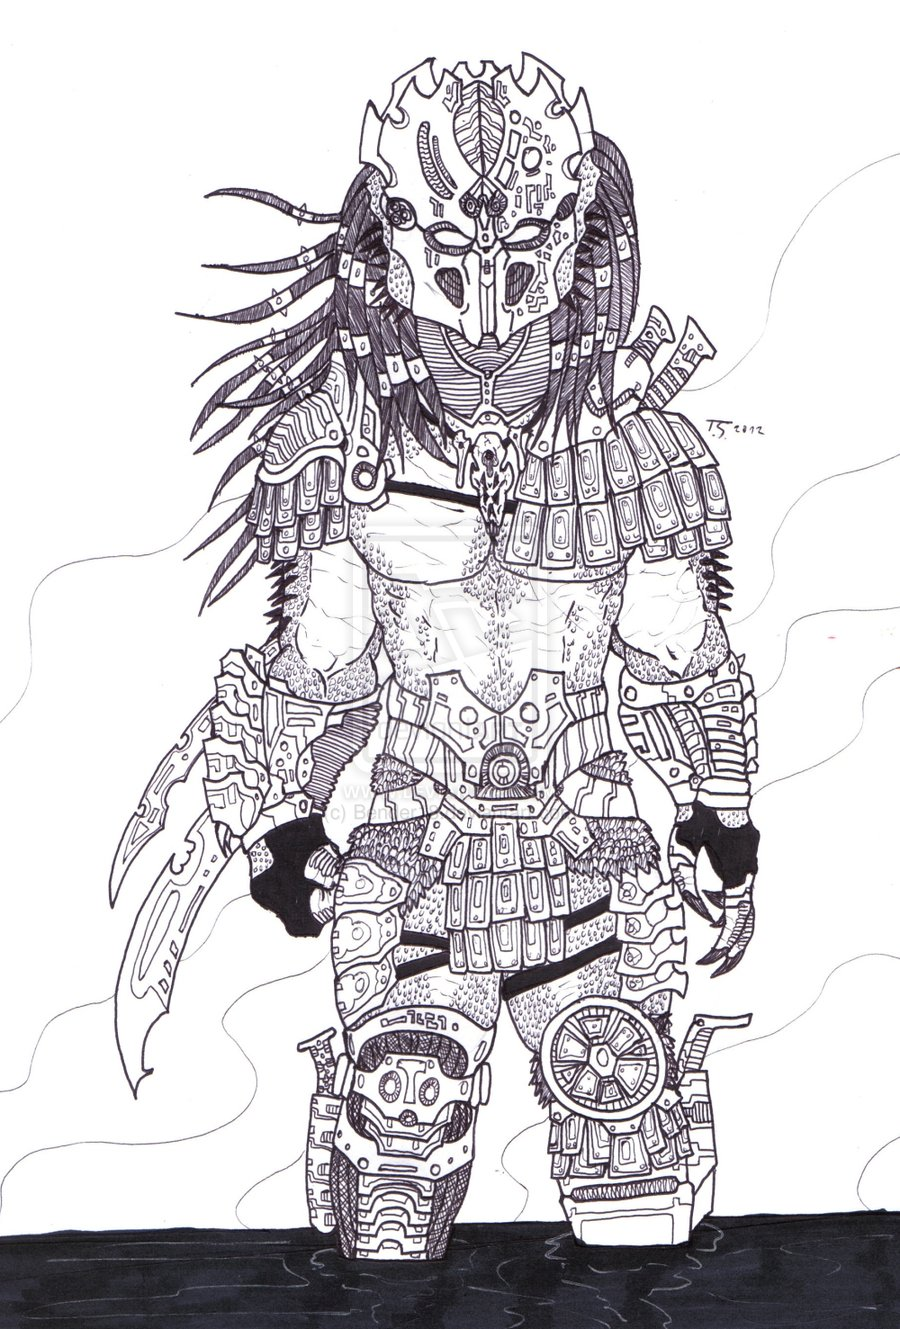 Drawn predator 4 scale Predator scale always Gi I